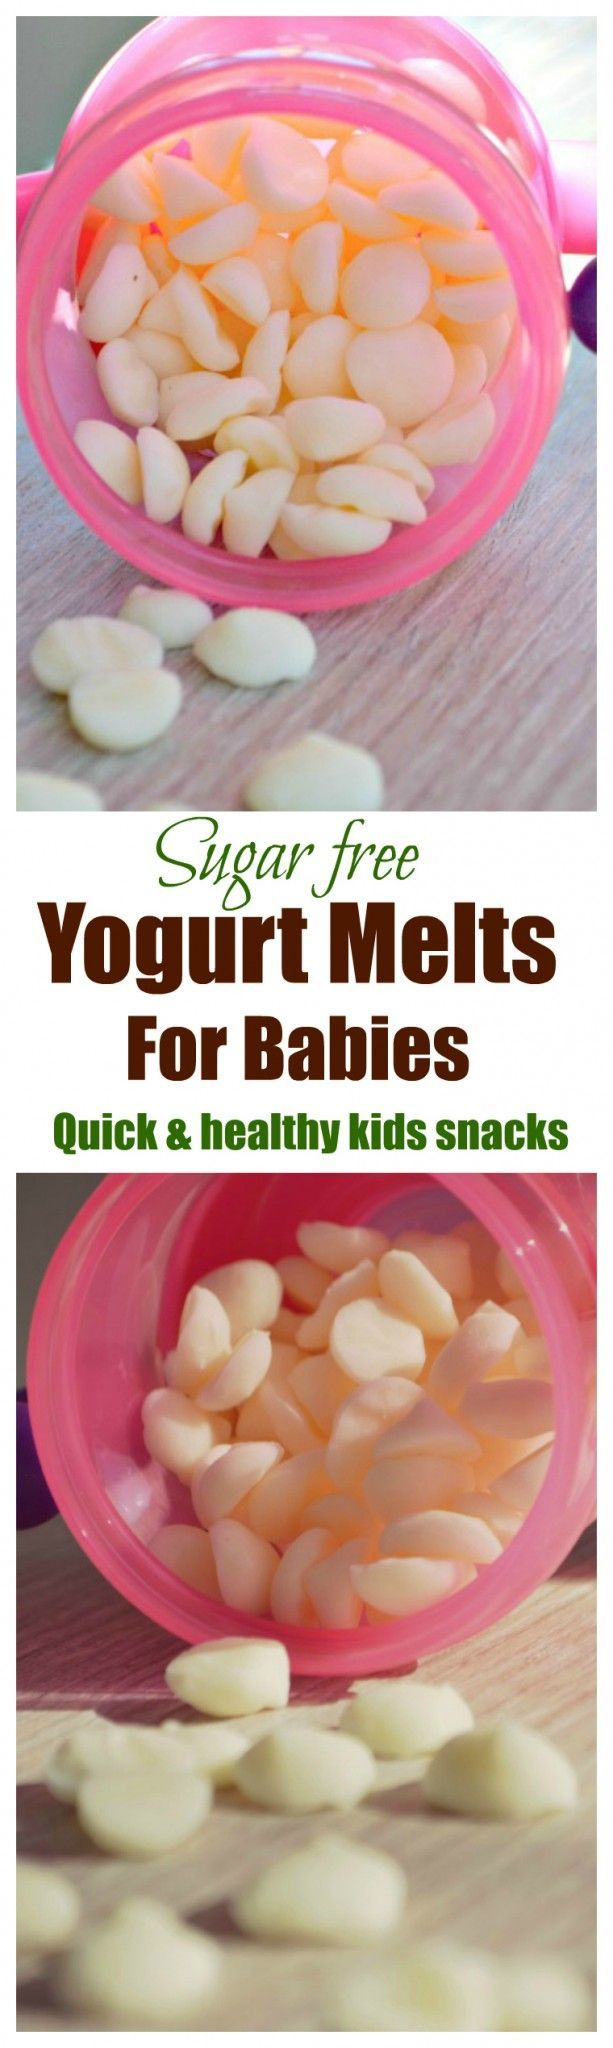 Baby yogurt melts are an healthy mess free way to eat yogurt on the go for babies. An easy way to tranistion babies from breastmilk to cow milk. Healthy kids snacks.